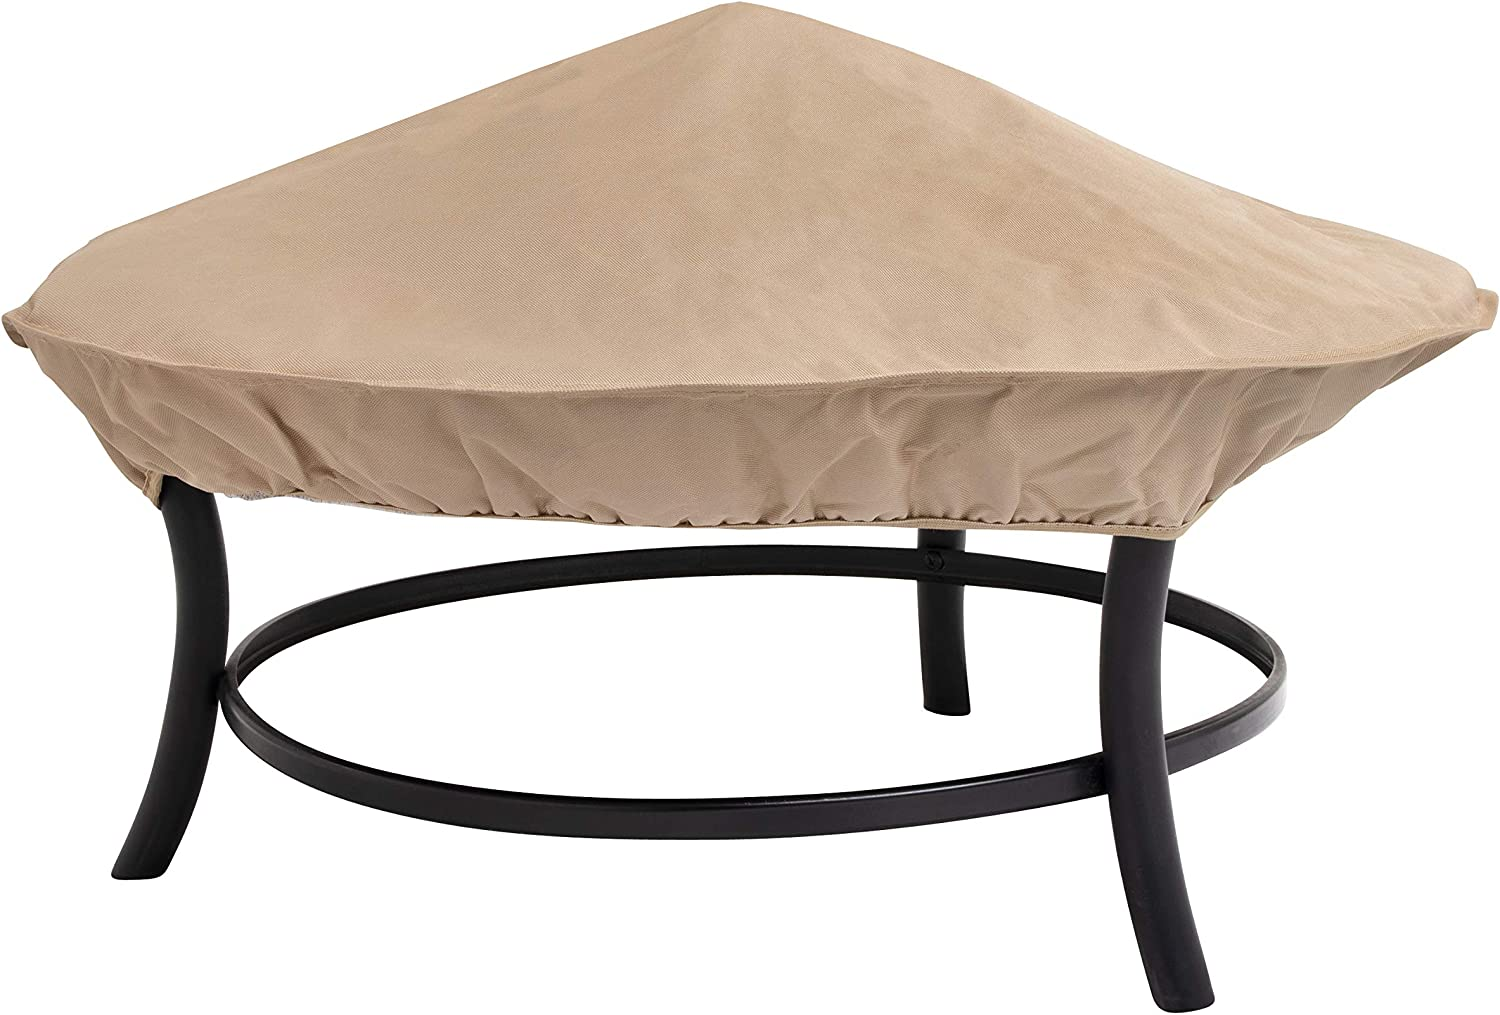 Modern Leisure Water-Resistant 35 in Fire Opening large release sale Max 68% OFF Beig Patio Cover Pit